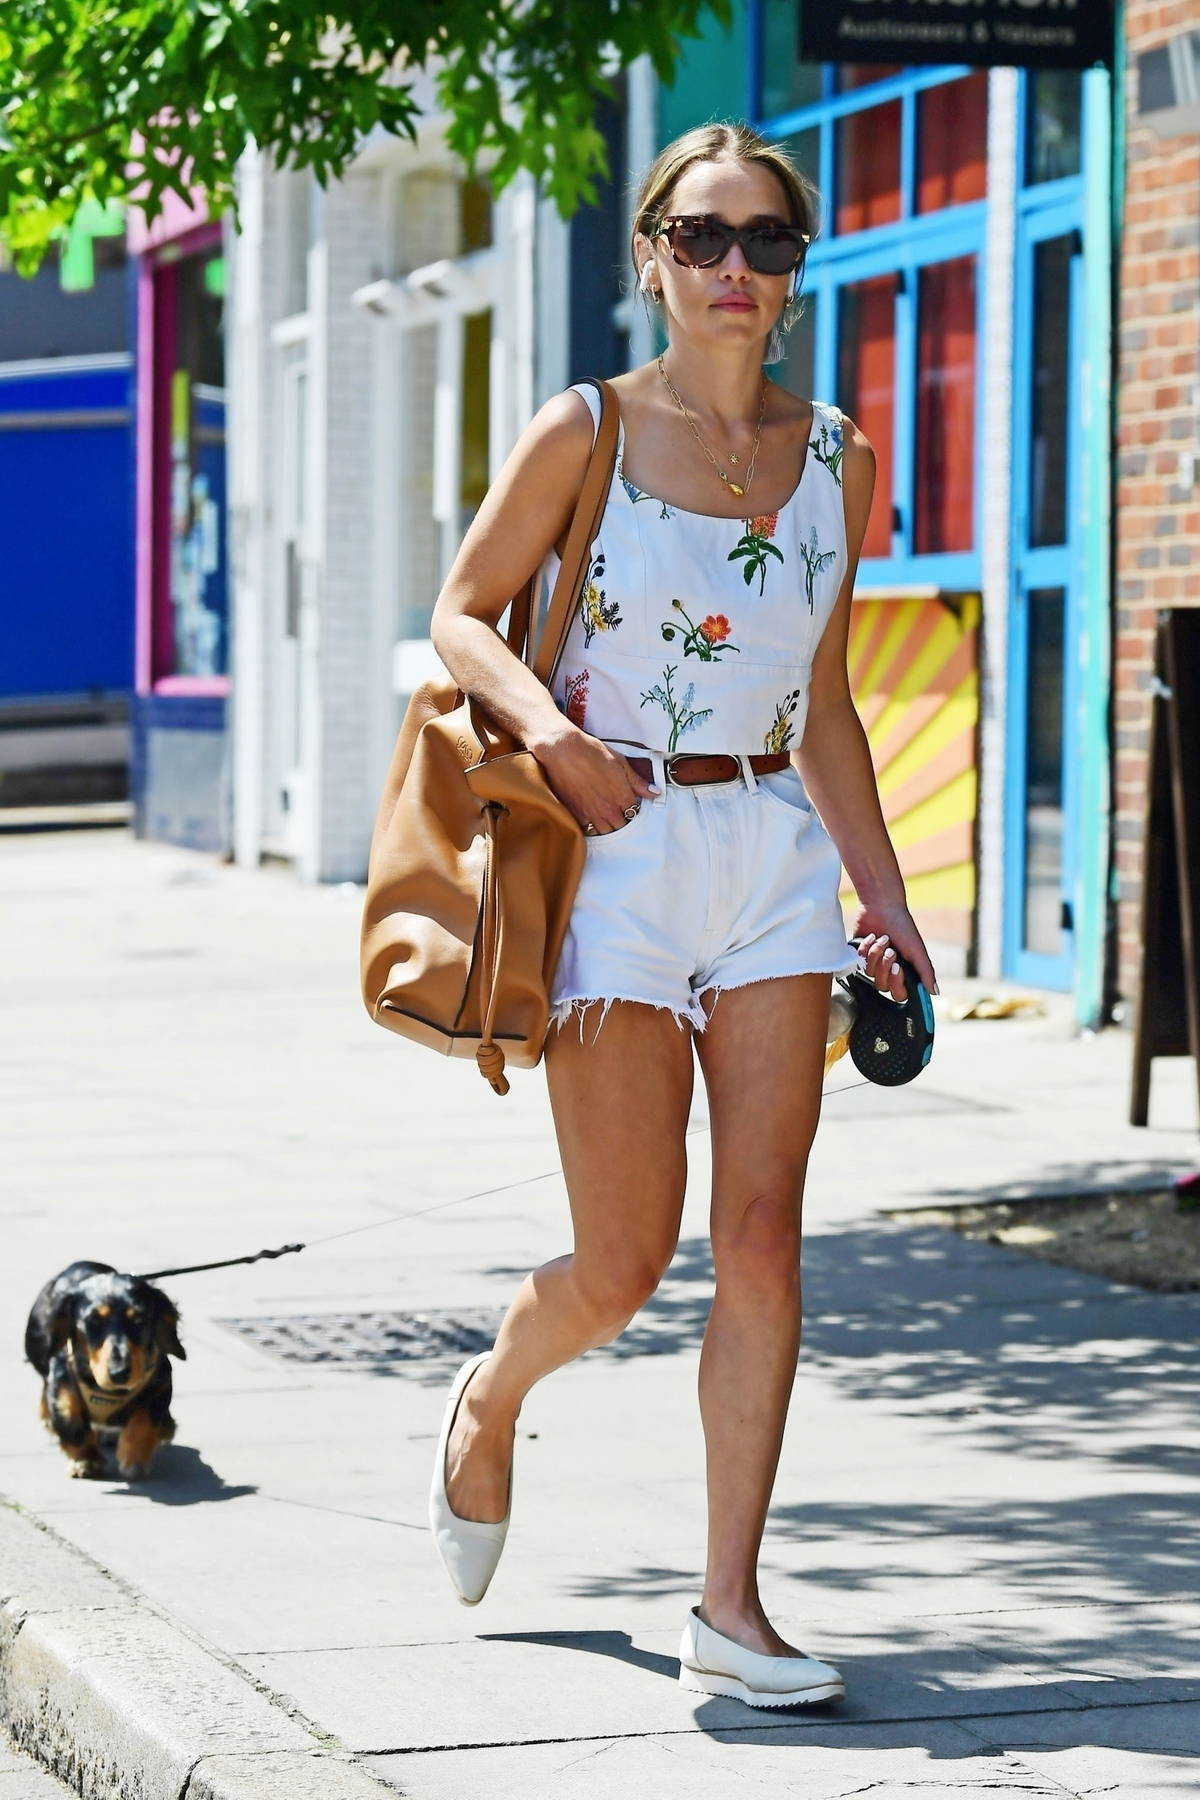 Emilia Clarke wears a floral print top and denim shorts as she takes her pooch to a dog park in London, UK